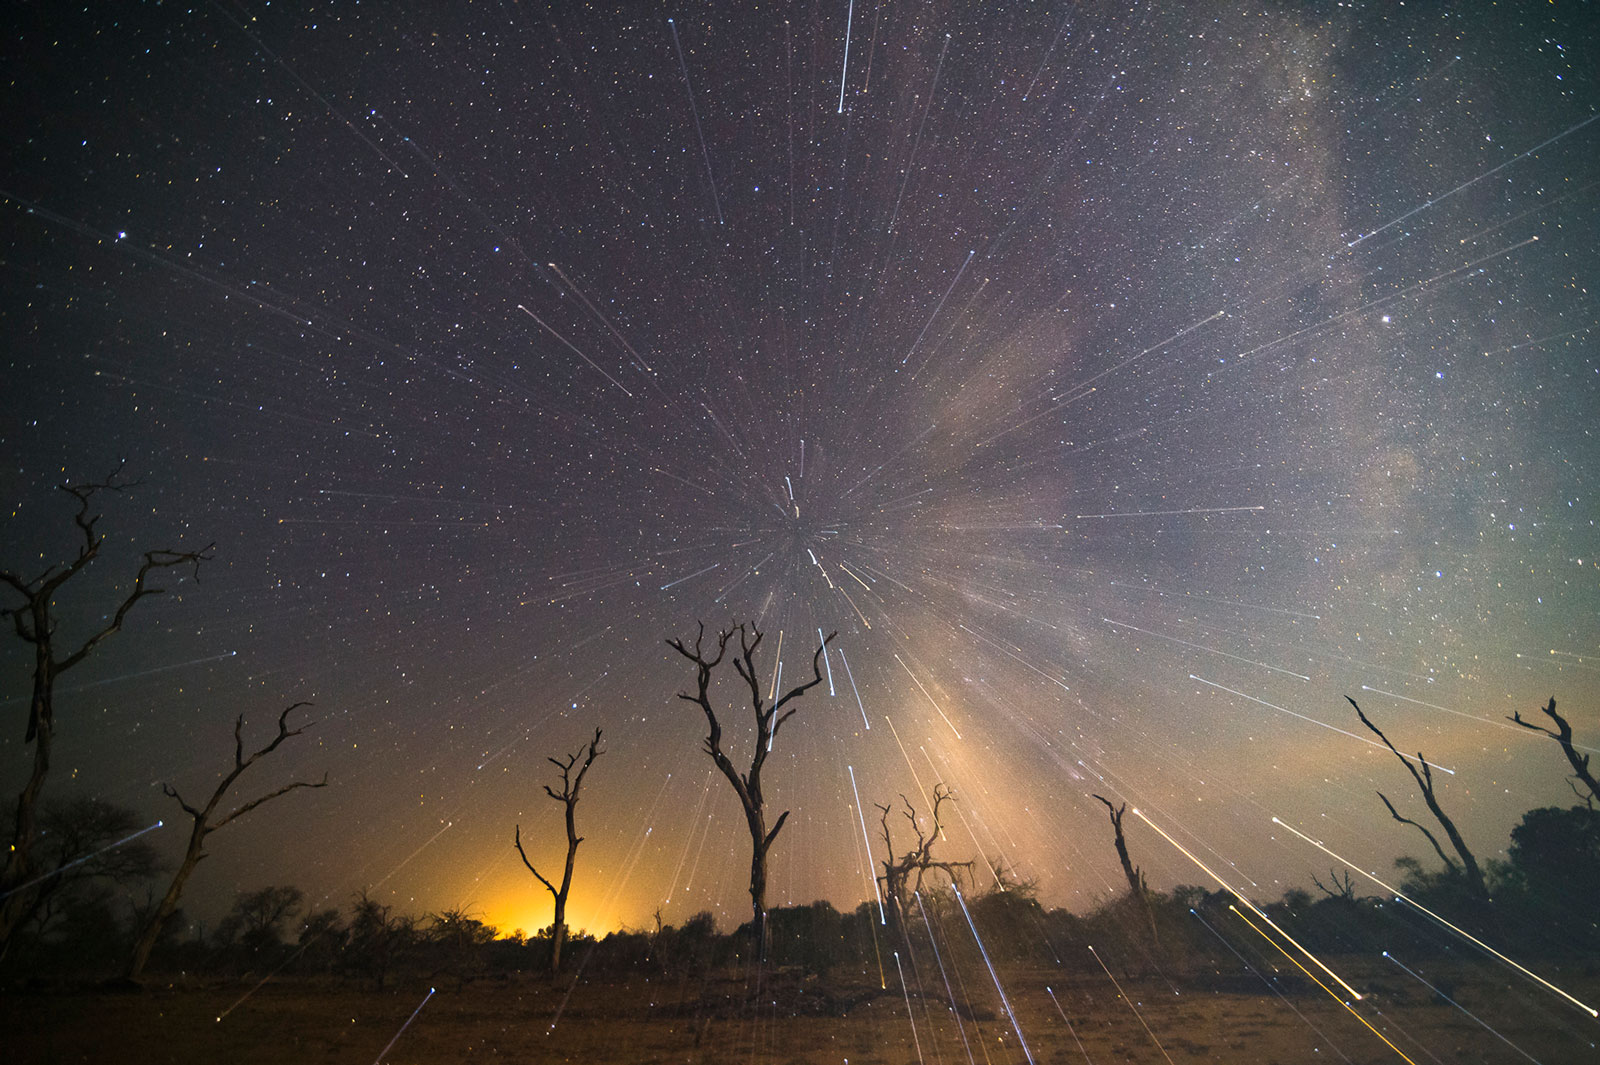 Star burst in Sabi Sand Game Reserve, South Africa ©Andrew Schoeman